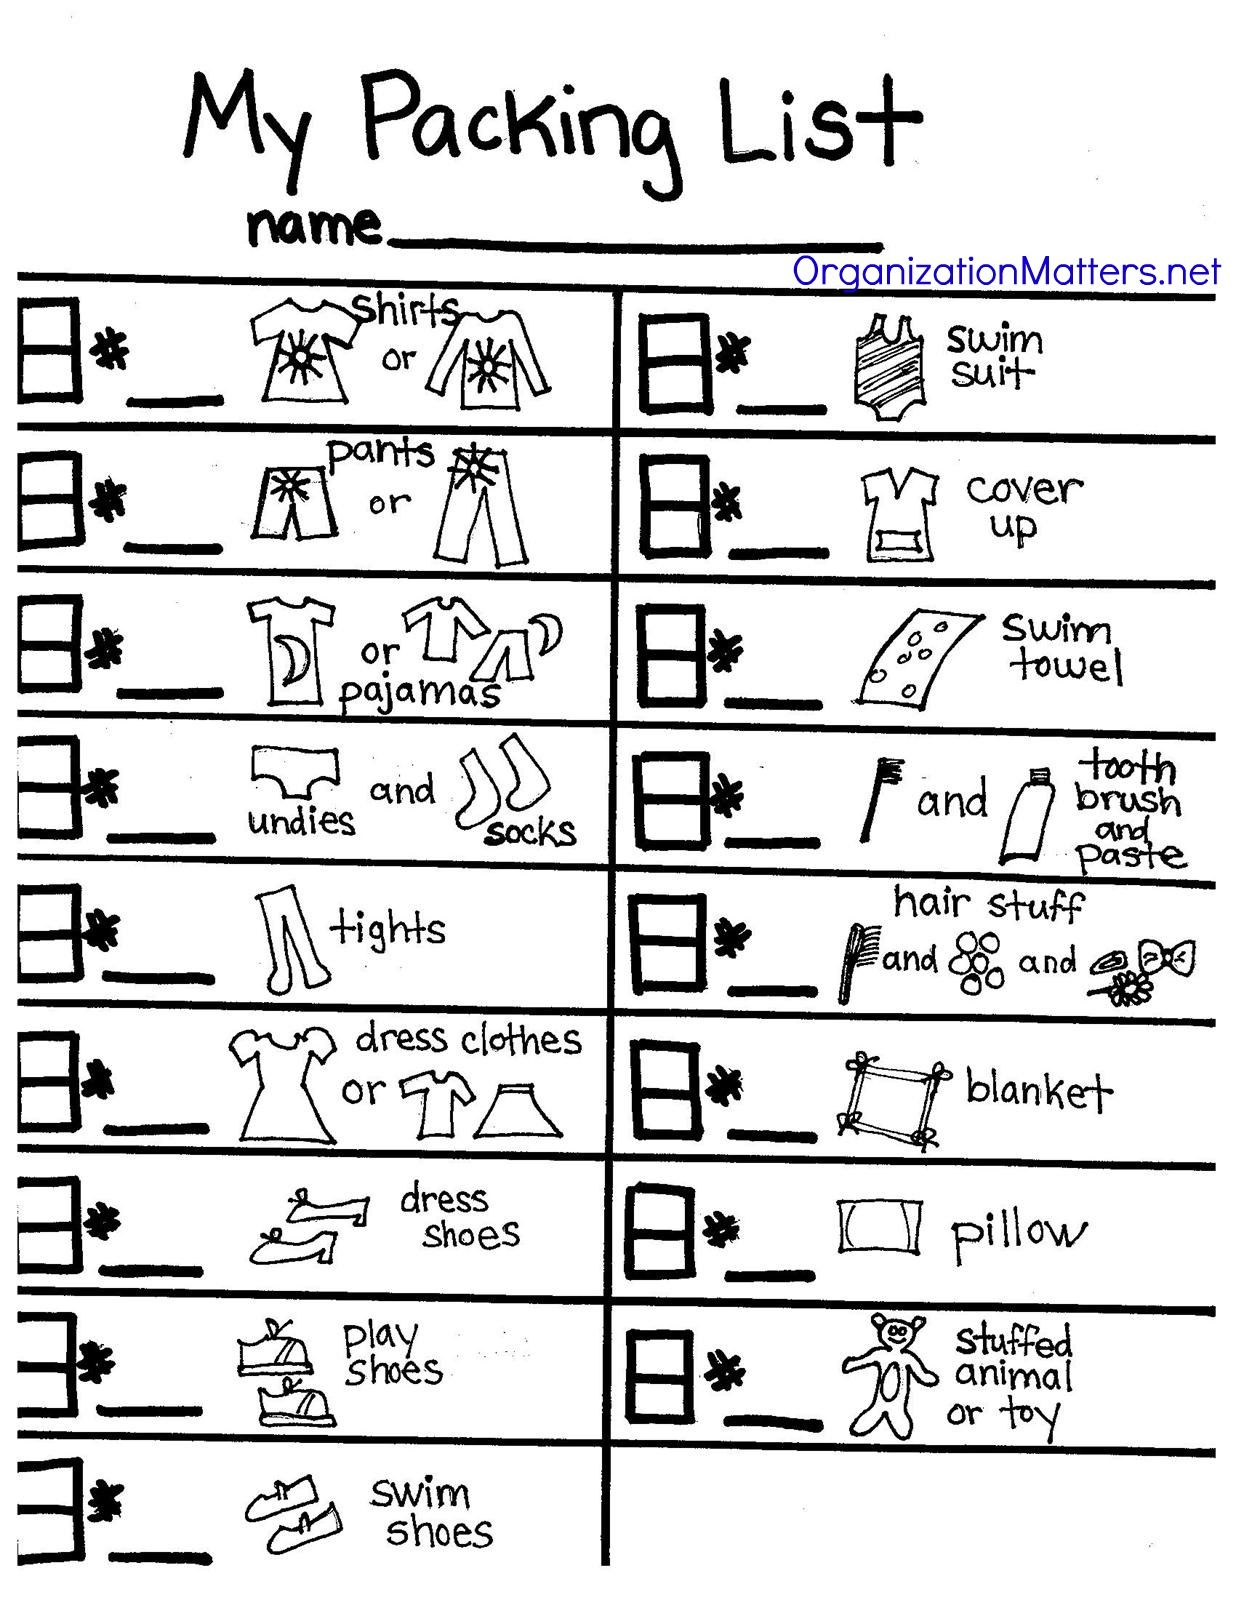 packing list for families customizable packing list template a packing list just for kids